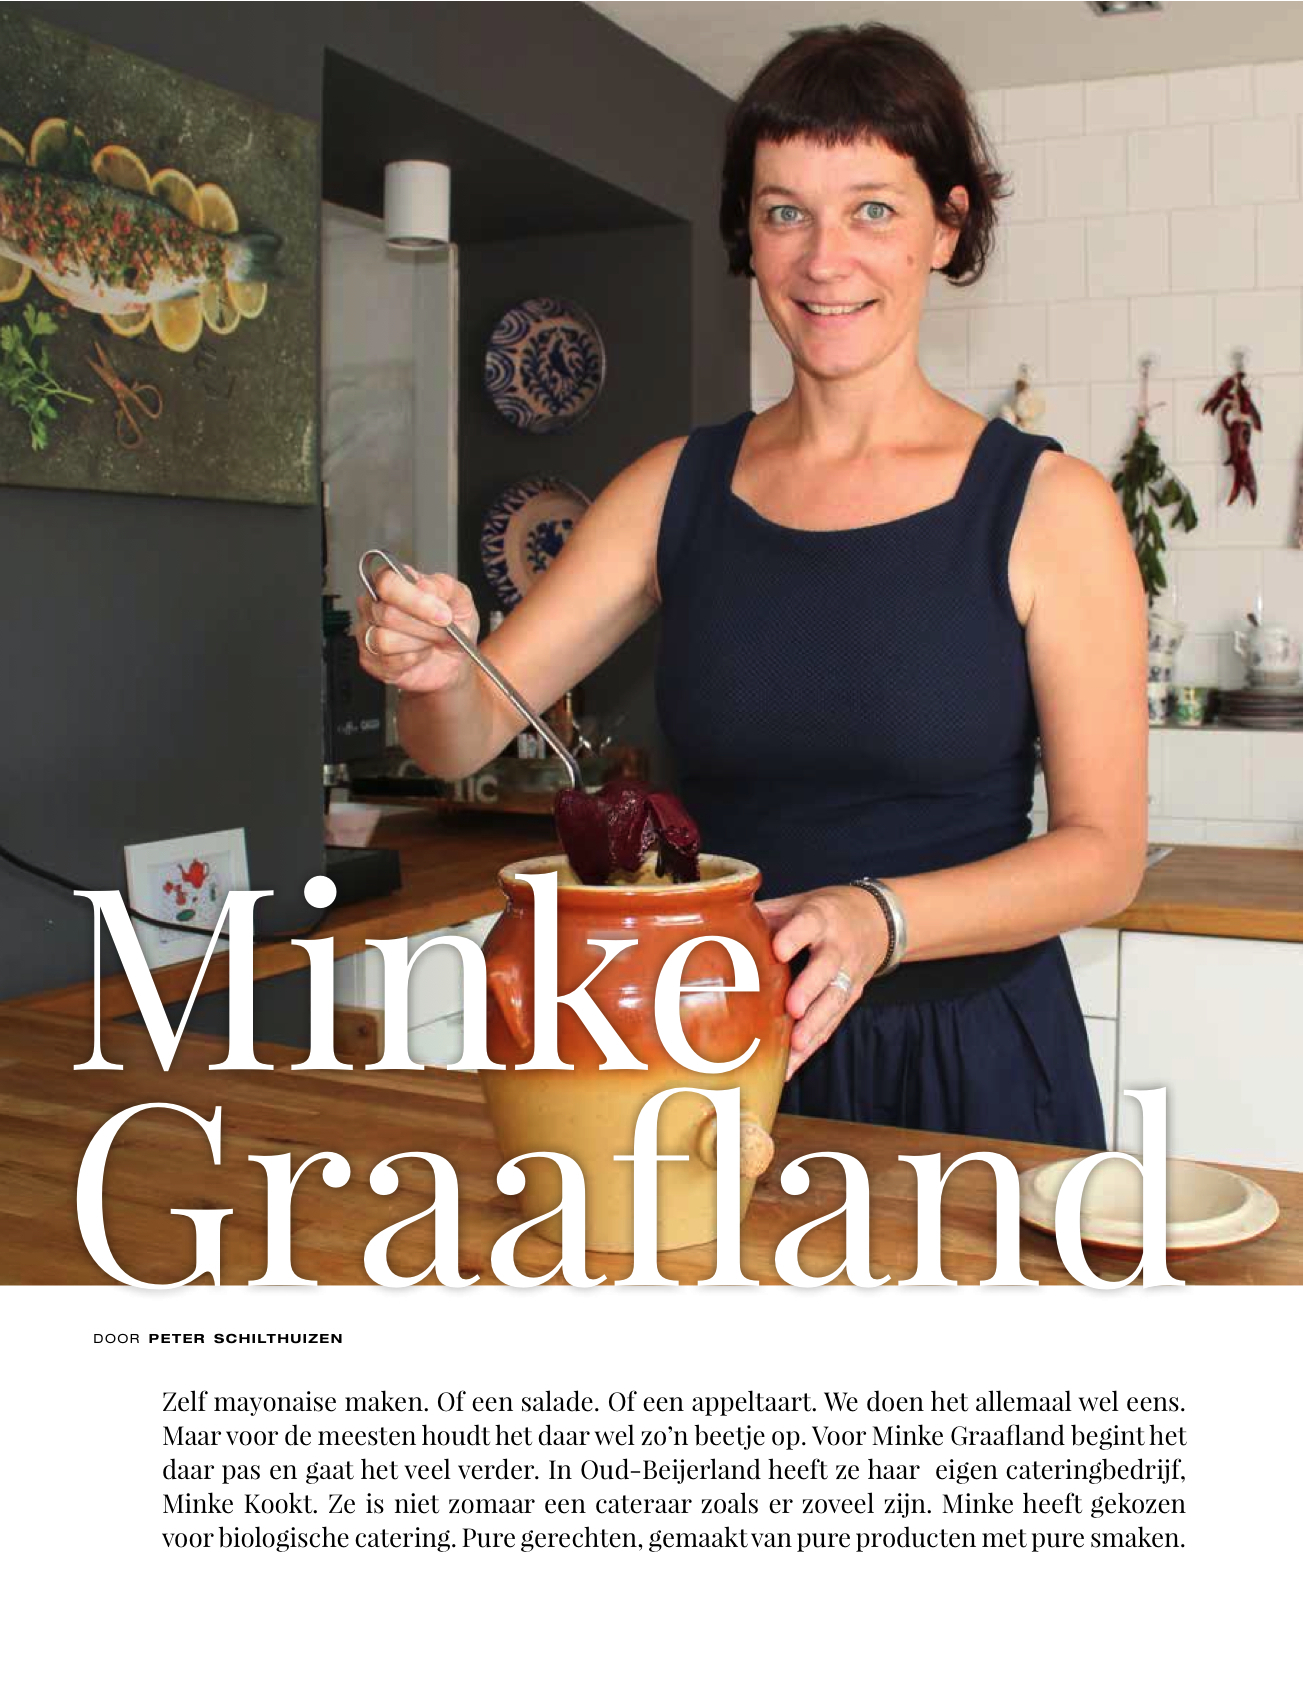 Interview met Minke Kookt in Glans Magazine!